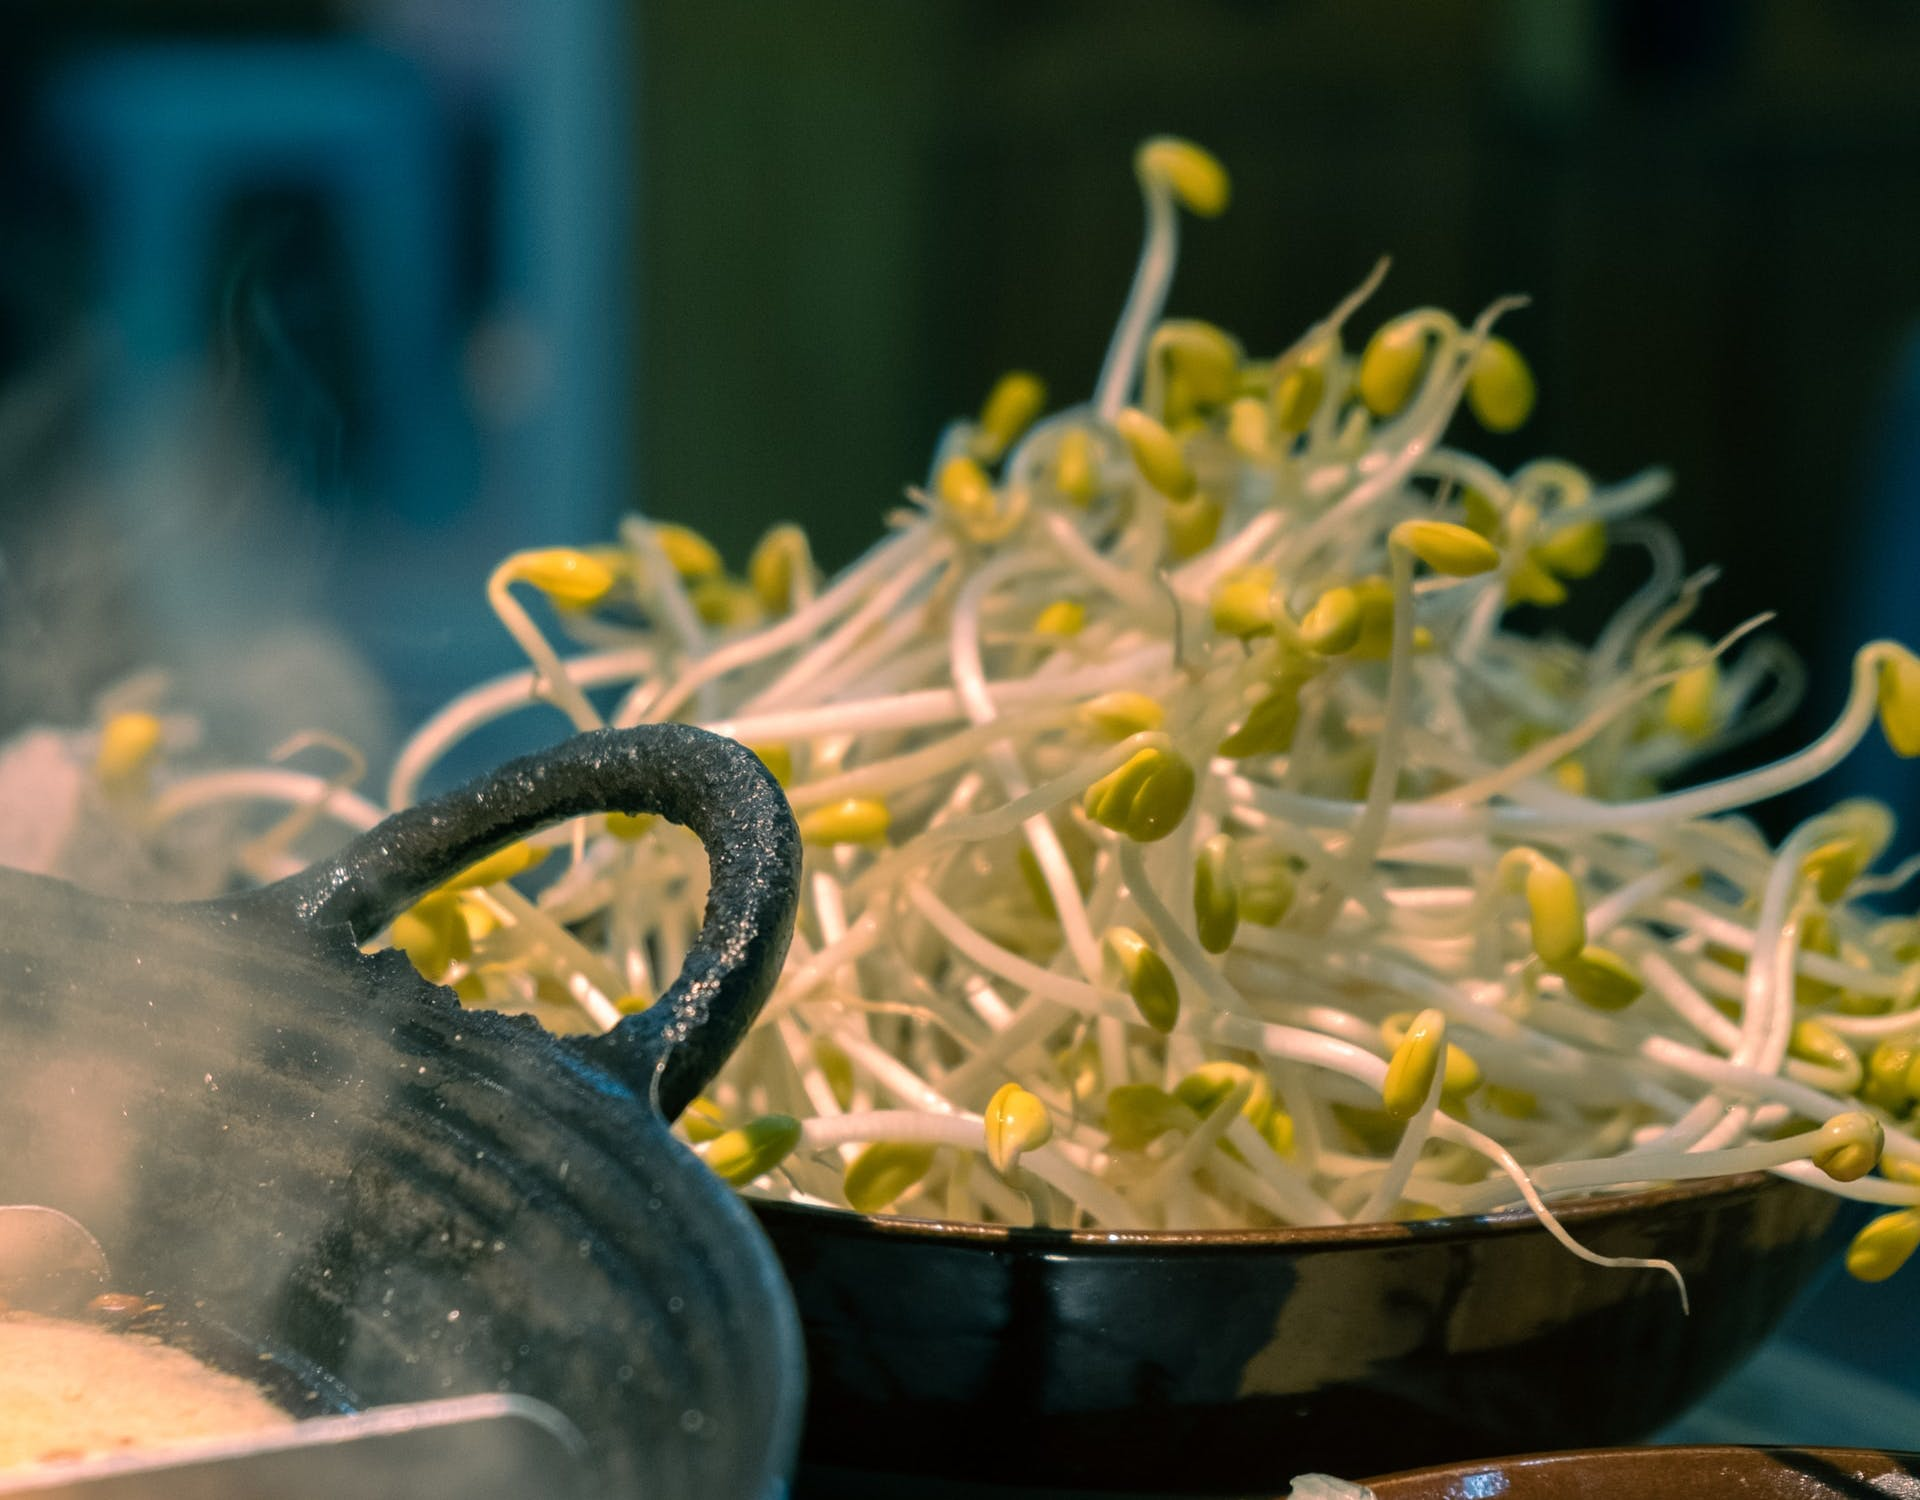 bean sprouts in a kitchen